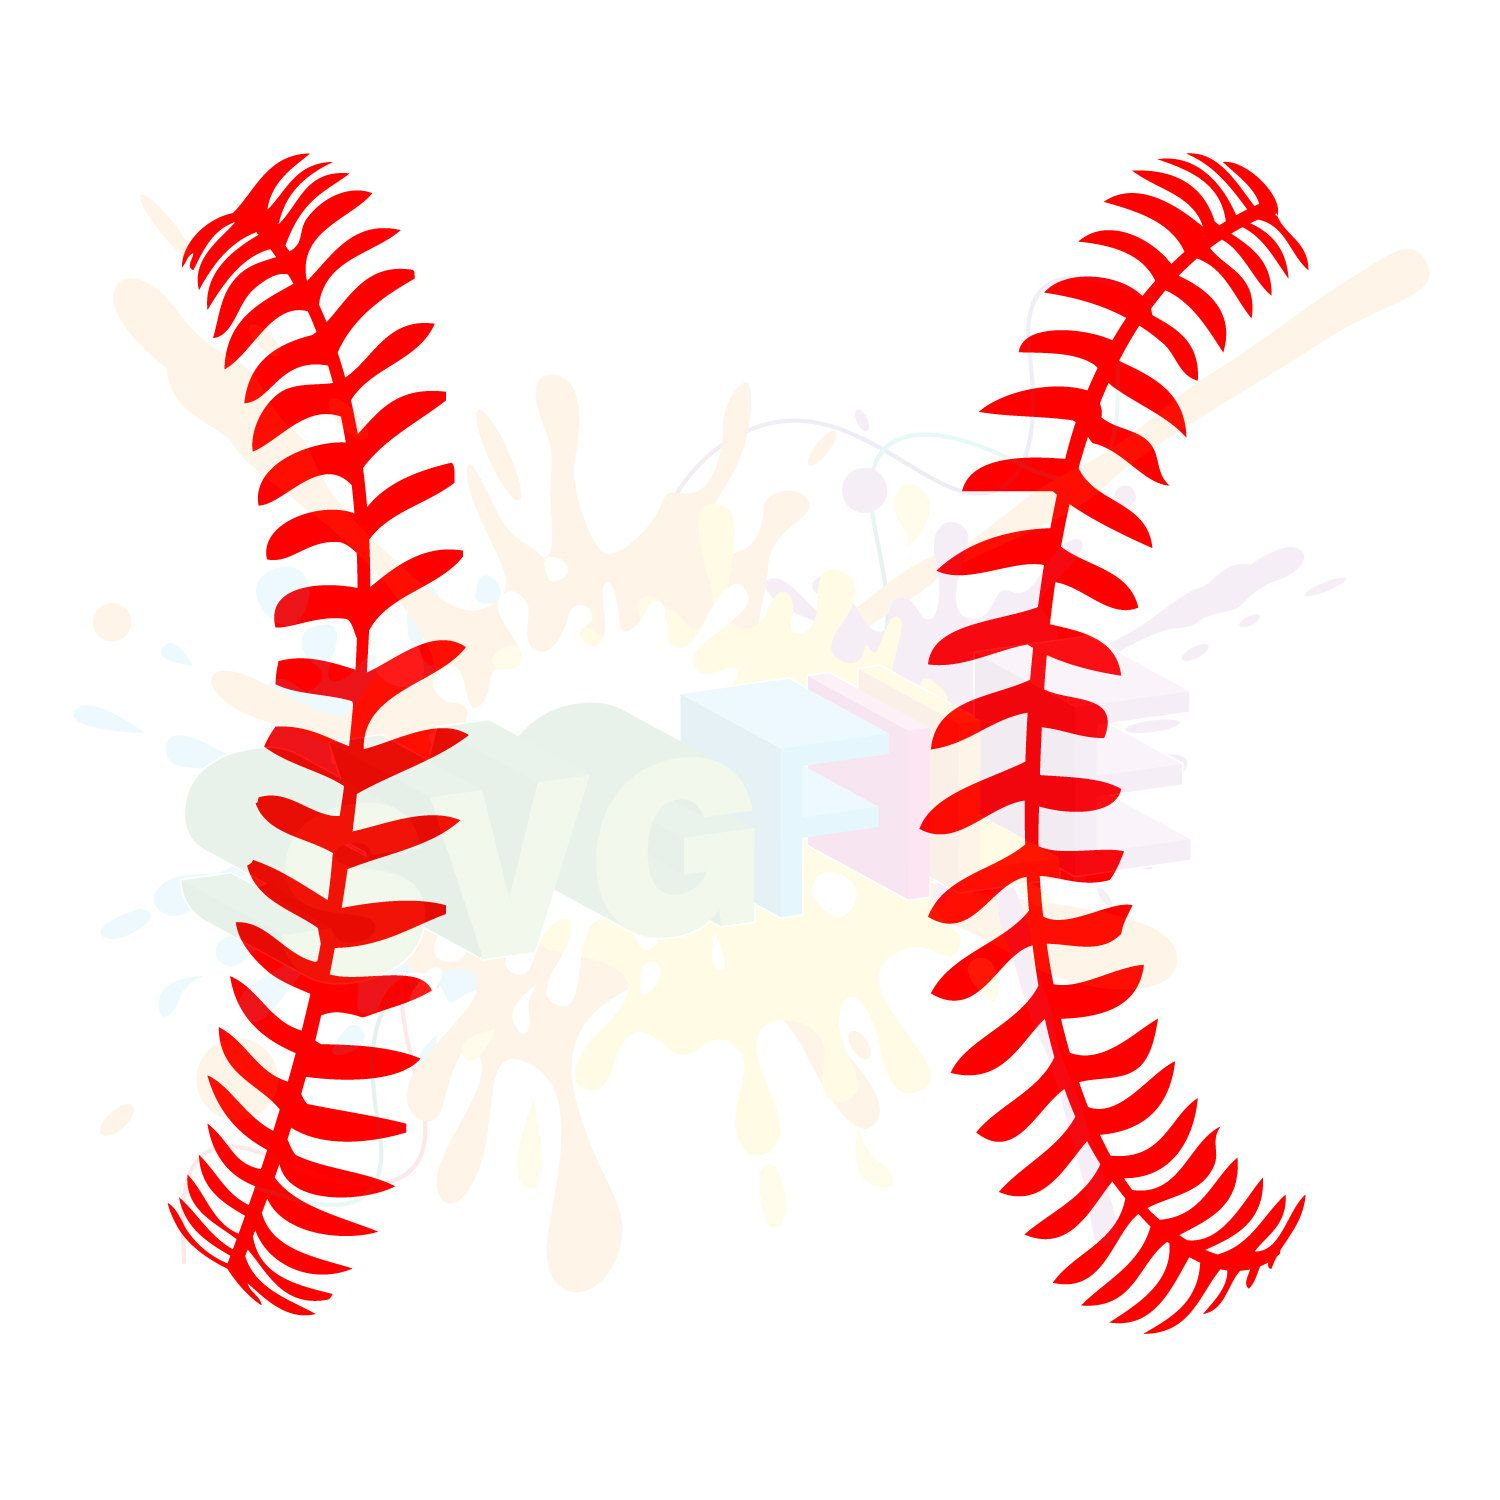 Softball seams clipart png freeuse library Softball Stitches SVG Files for Cutting Baseball Cricut ... png freeuse library